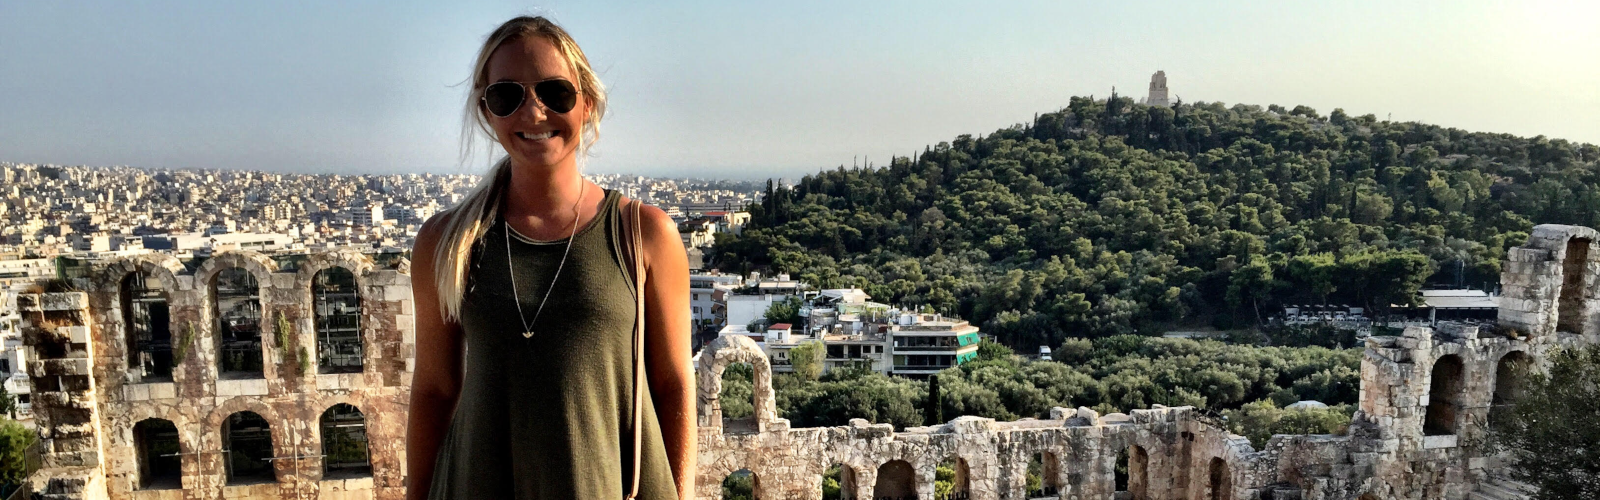 student Alex Fechtel on study abroad trip to Greece